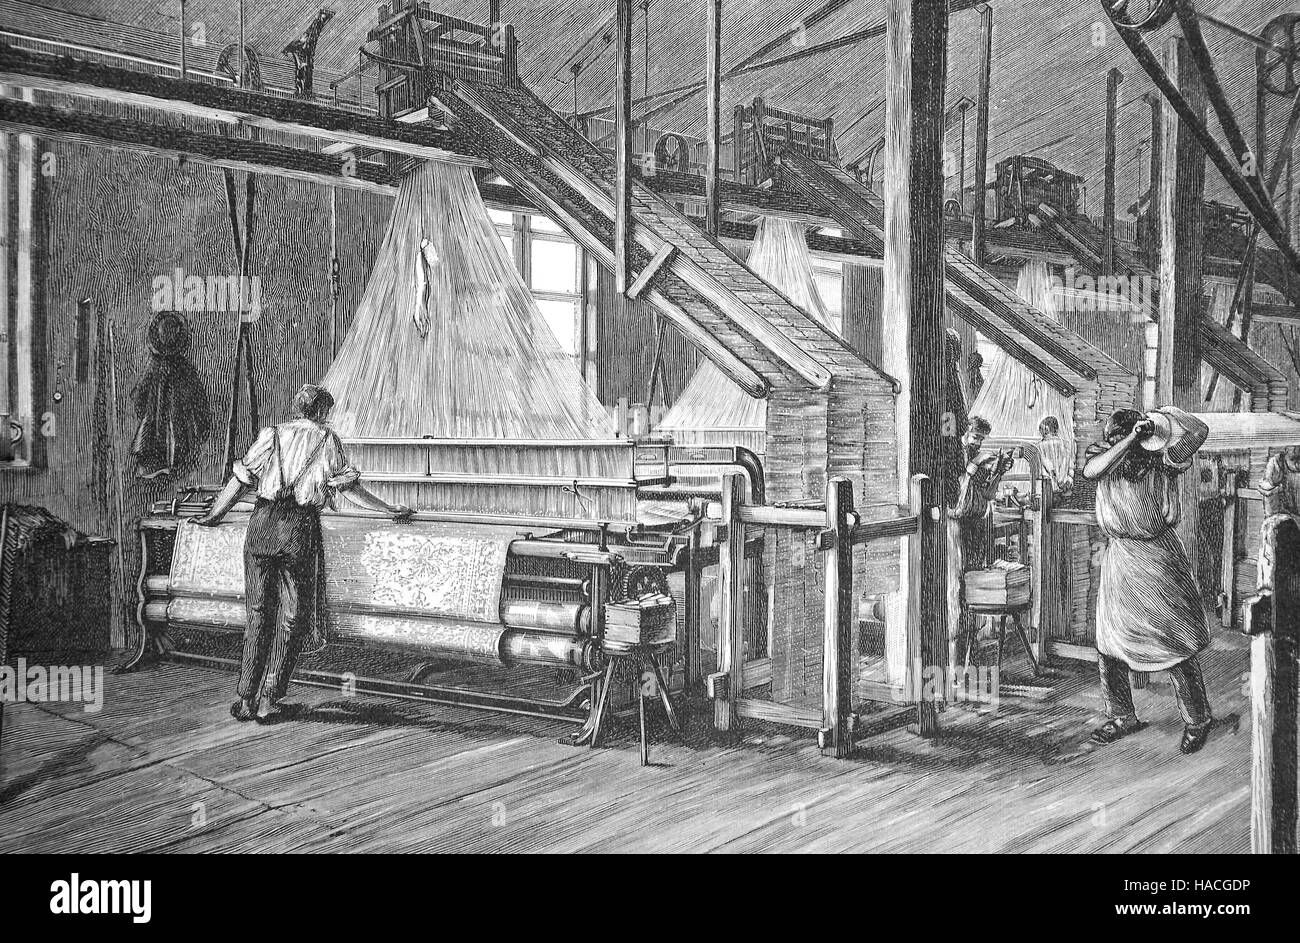 Jacquard loom in a weaving mill, 1880, historic illustration, woodcut - Stock Image